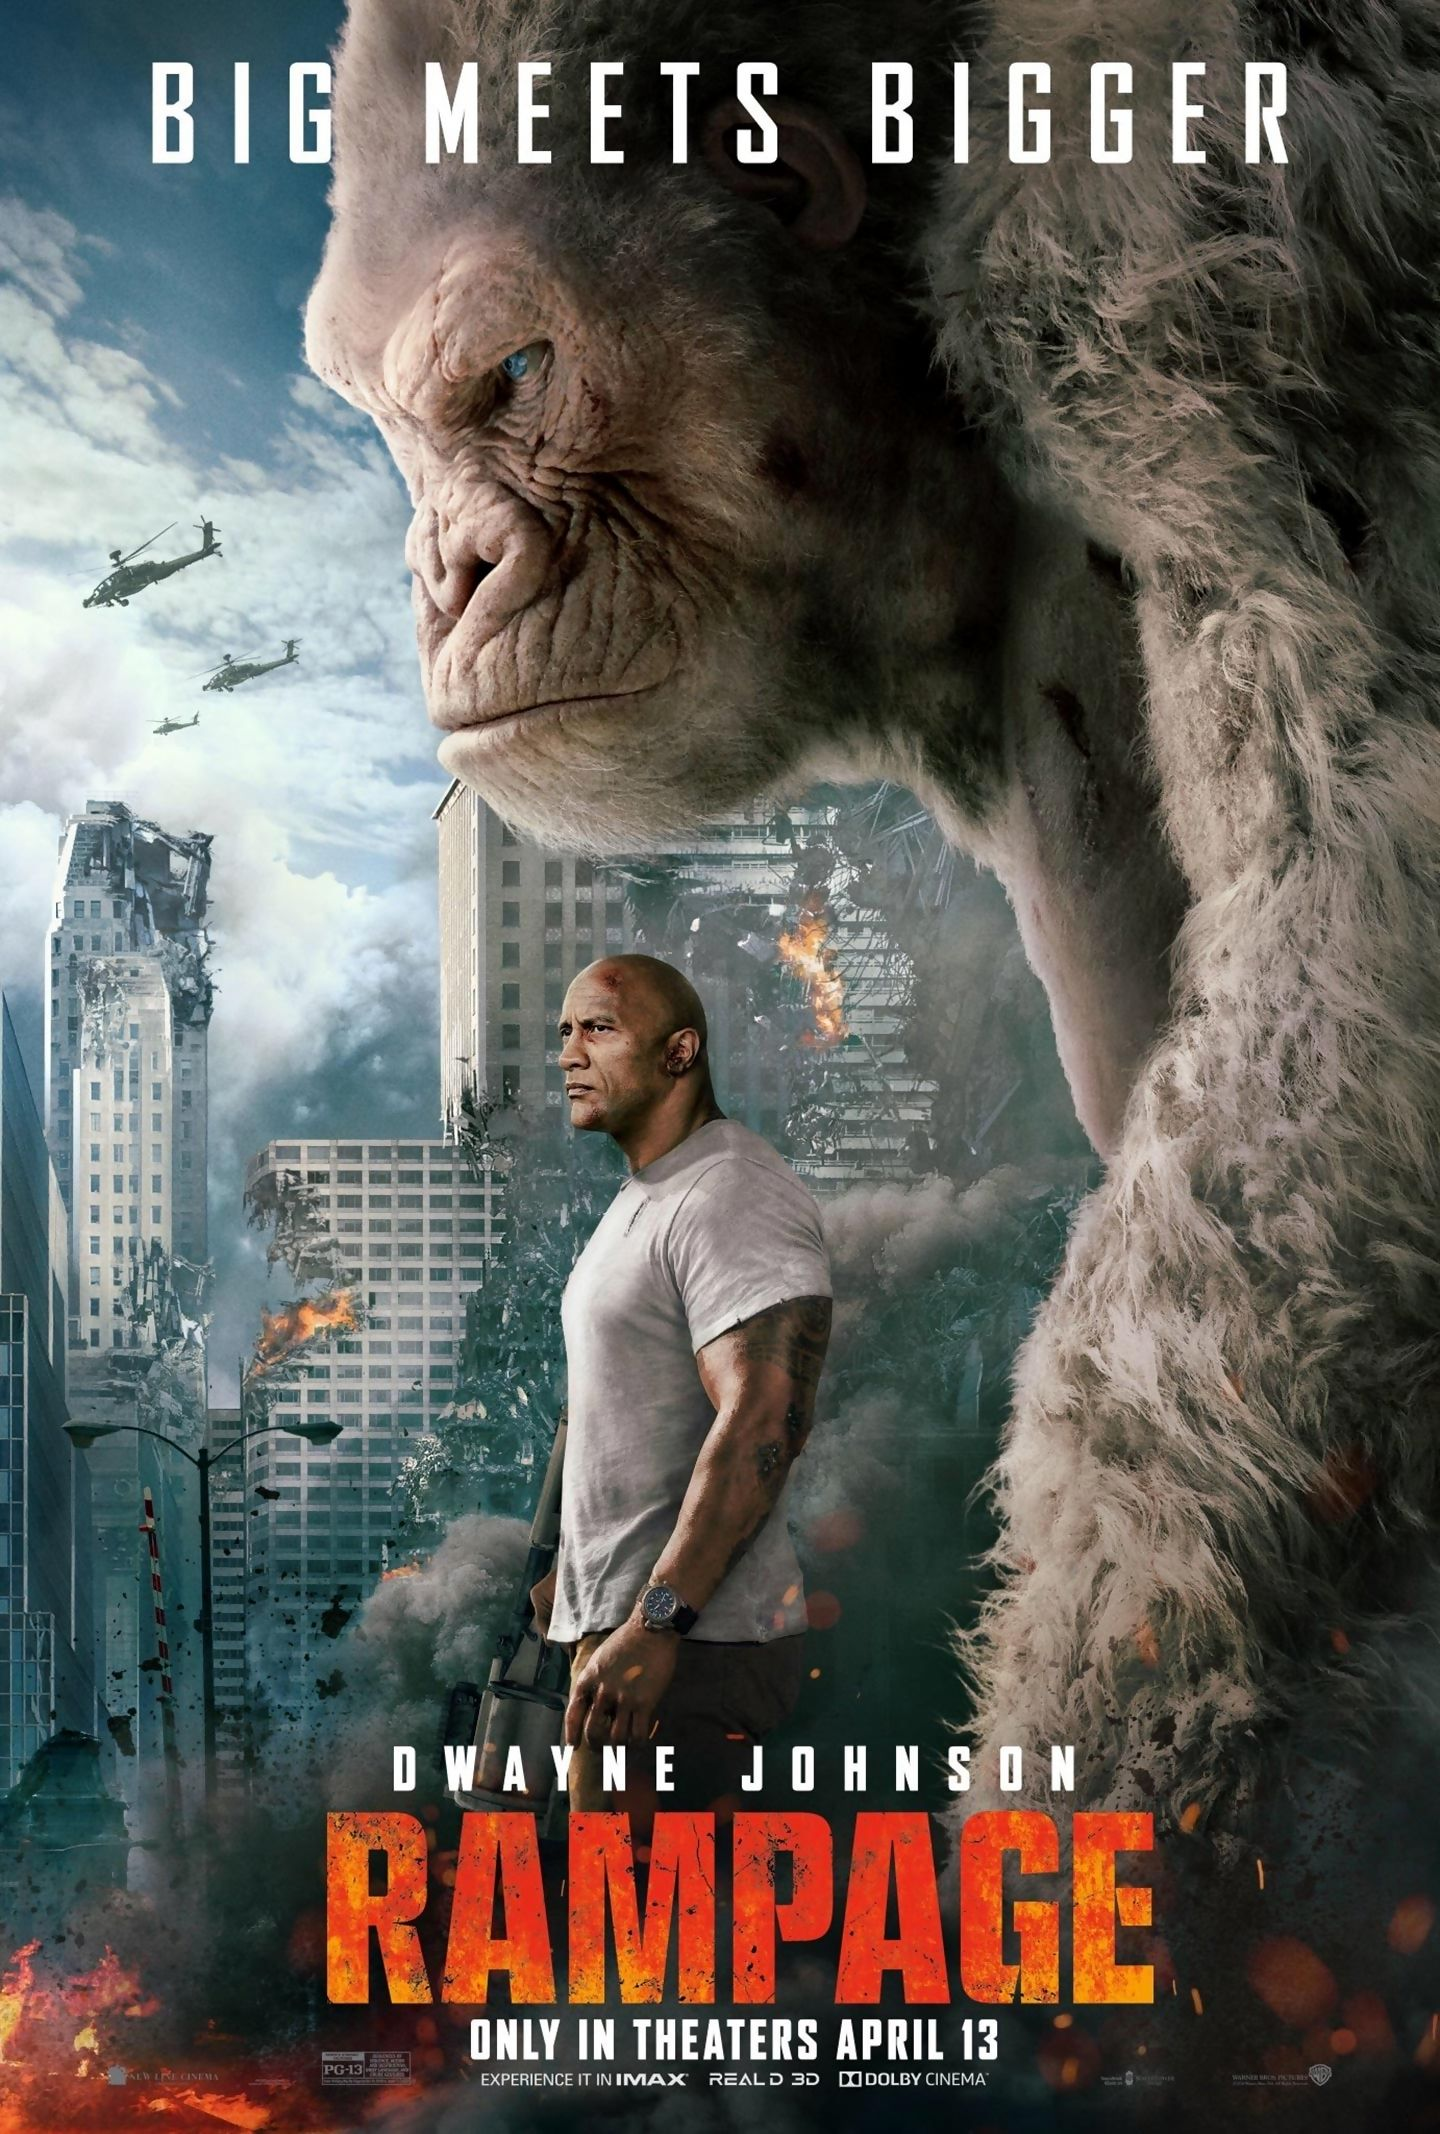 Rampage is a 2018 American science fiction monster film loosely based on  the video game series of the same name by Midway Games.